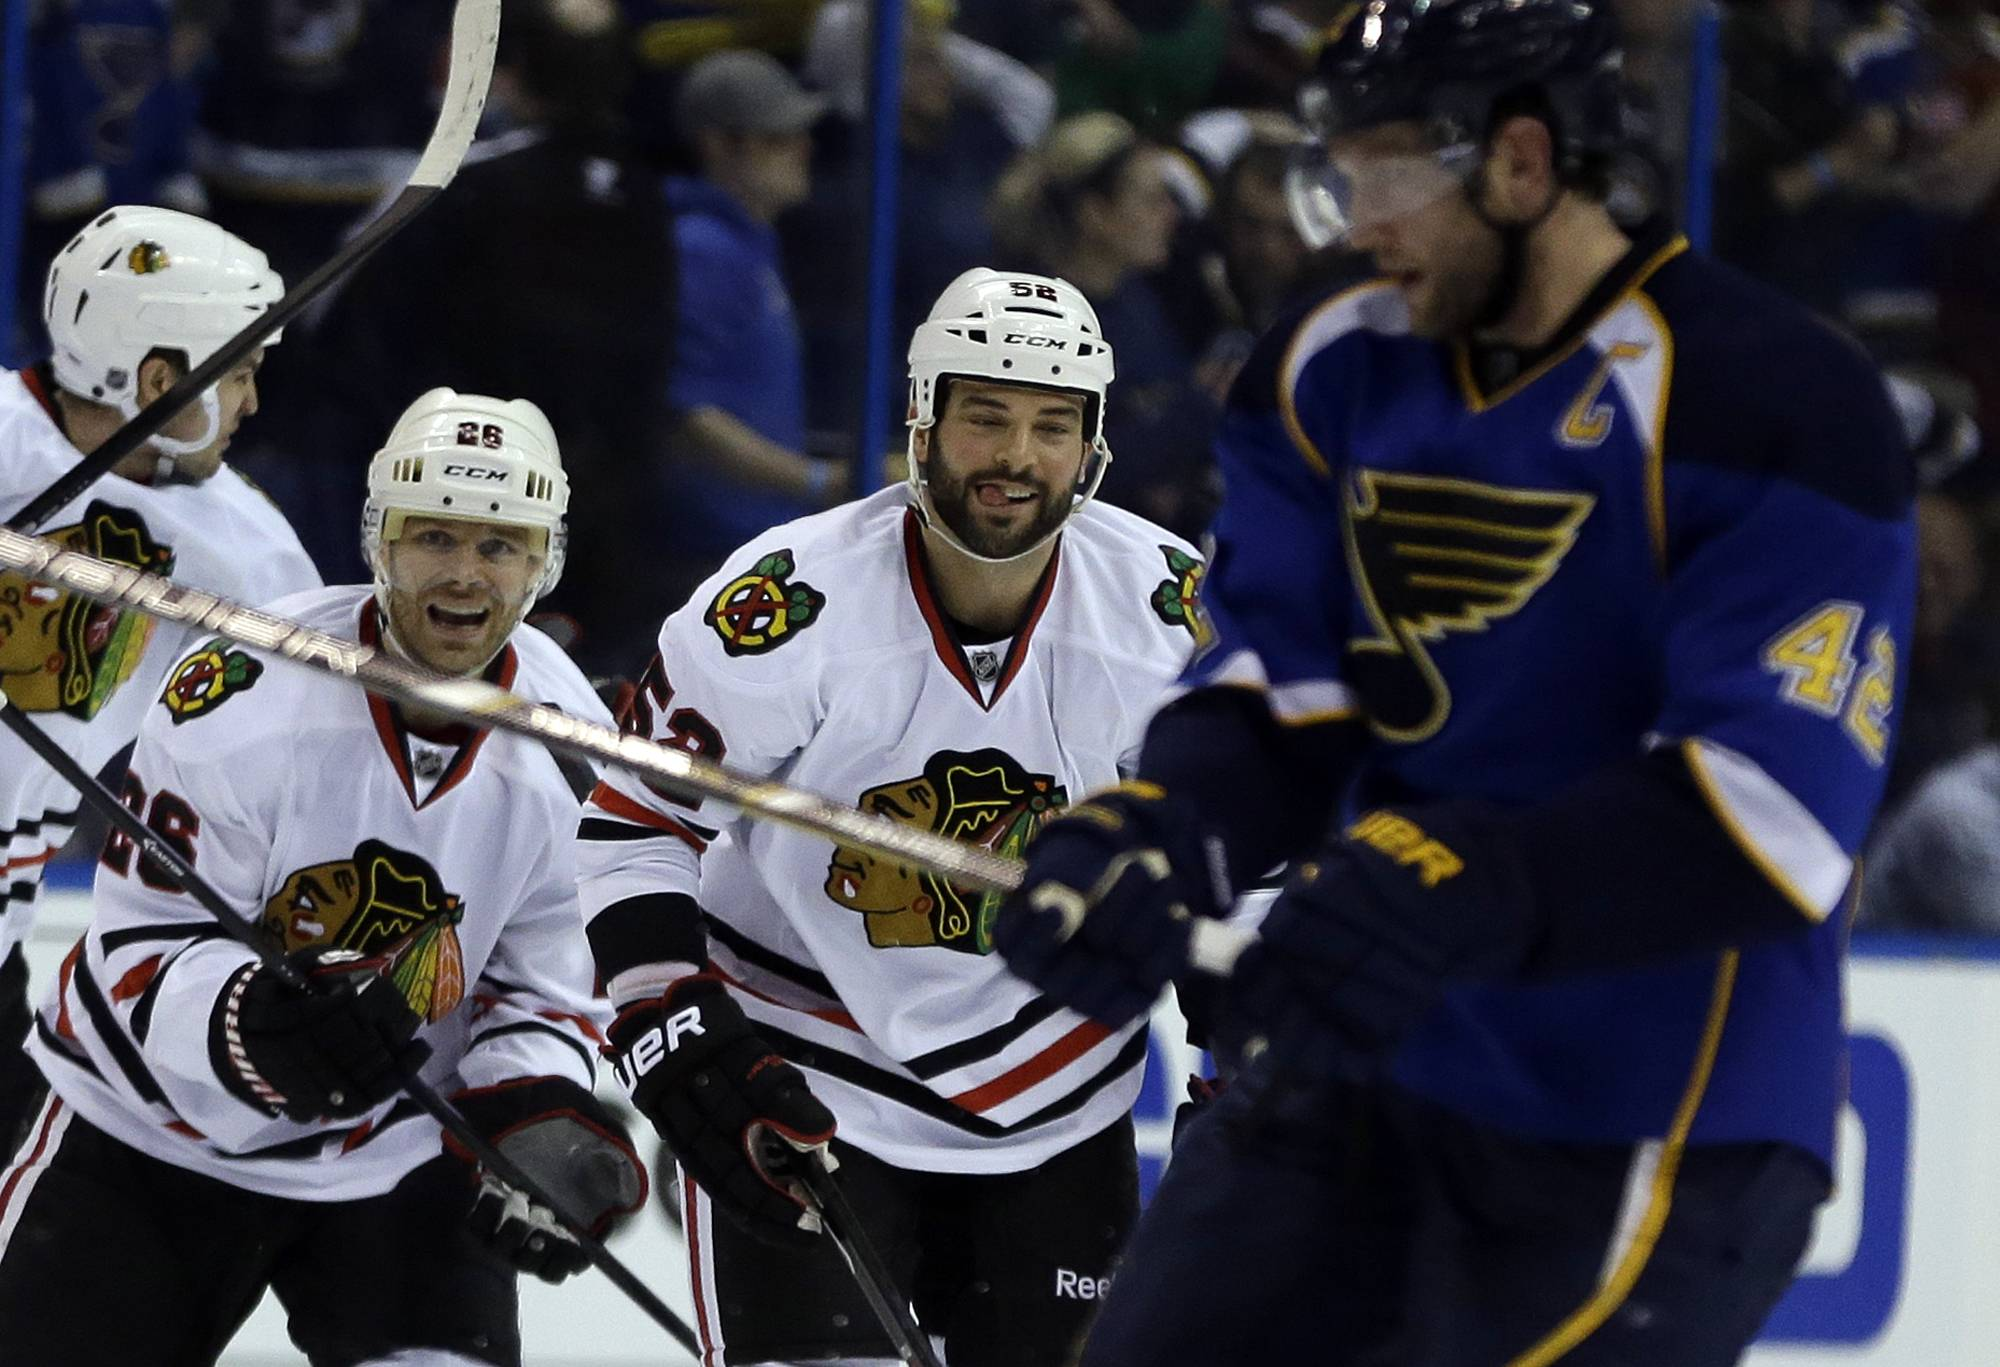 Chicago Blackhawks' Michal Handzus, of Slovakia, and teammate Brandon Bollig, center, celebrate as St. Louis Blues' David Backes, right, skates off the ice at the end of Game 5.